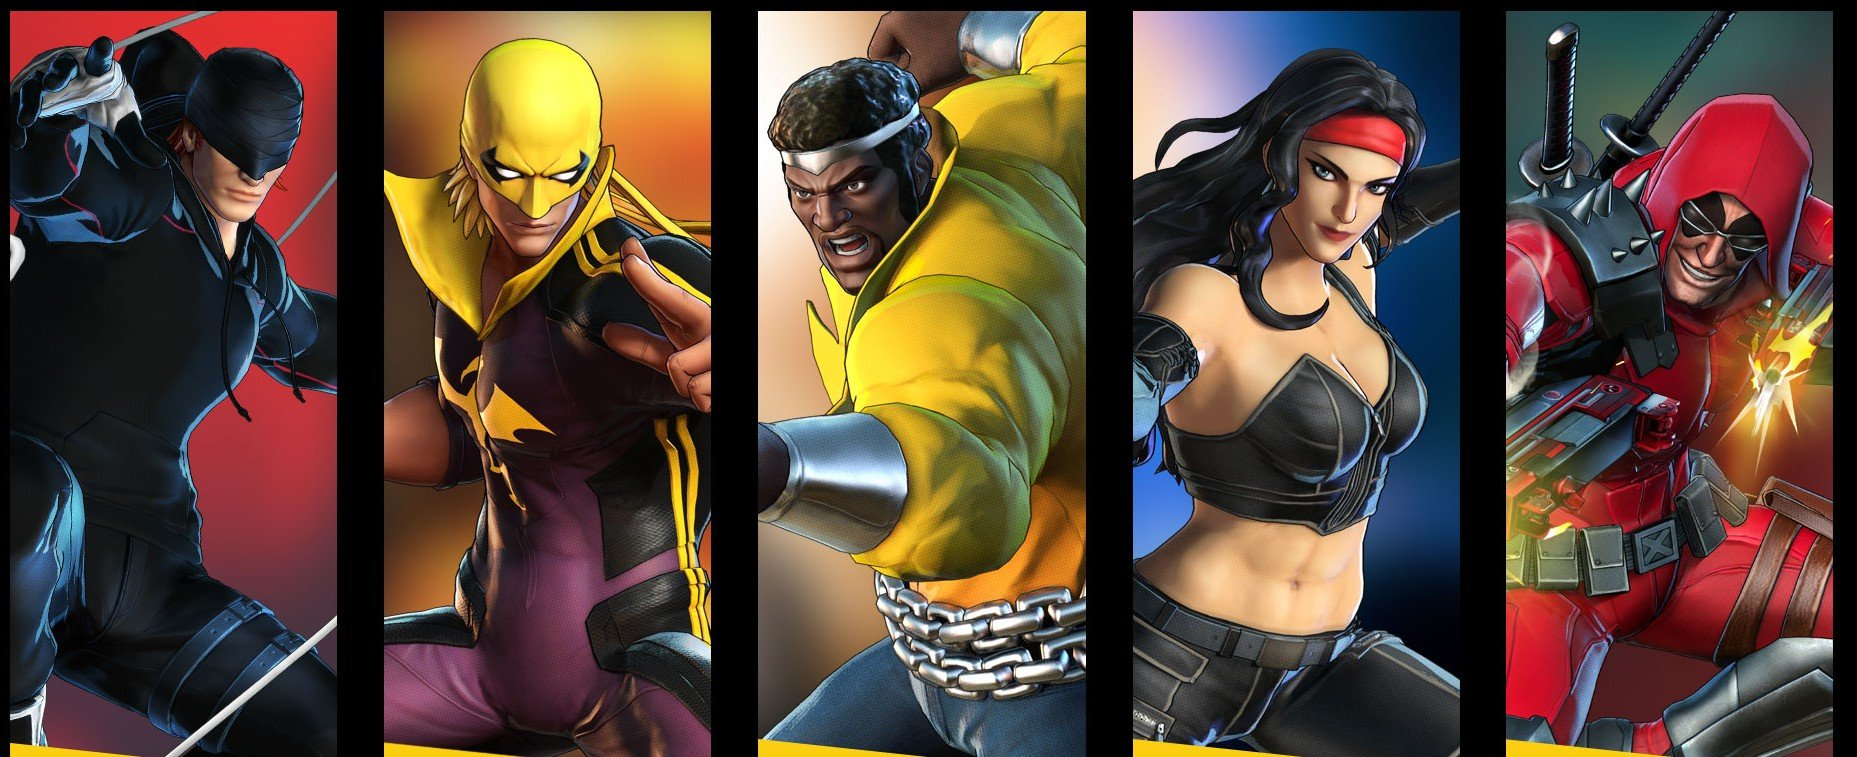 A few Defenders go old school in this new set of Marvel Ultimate Alliance 3 costumes screenshot